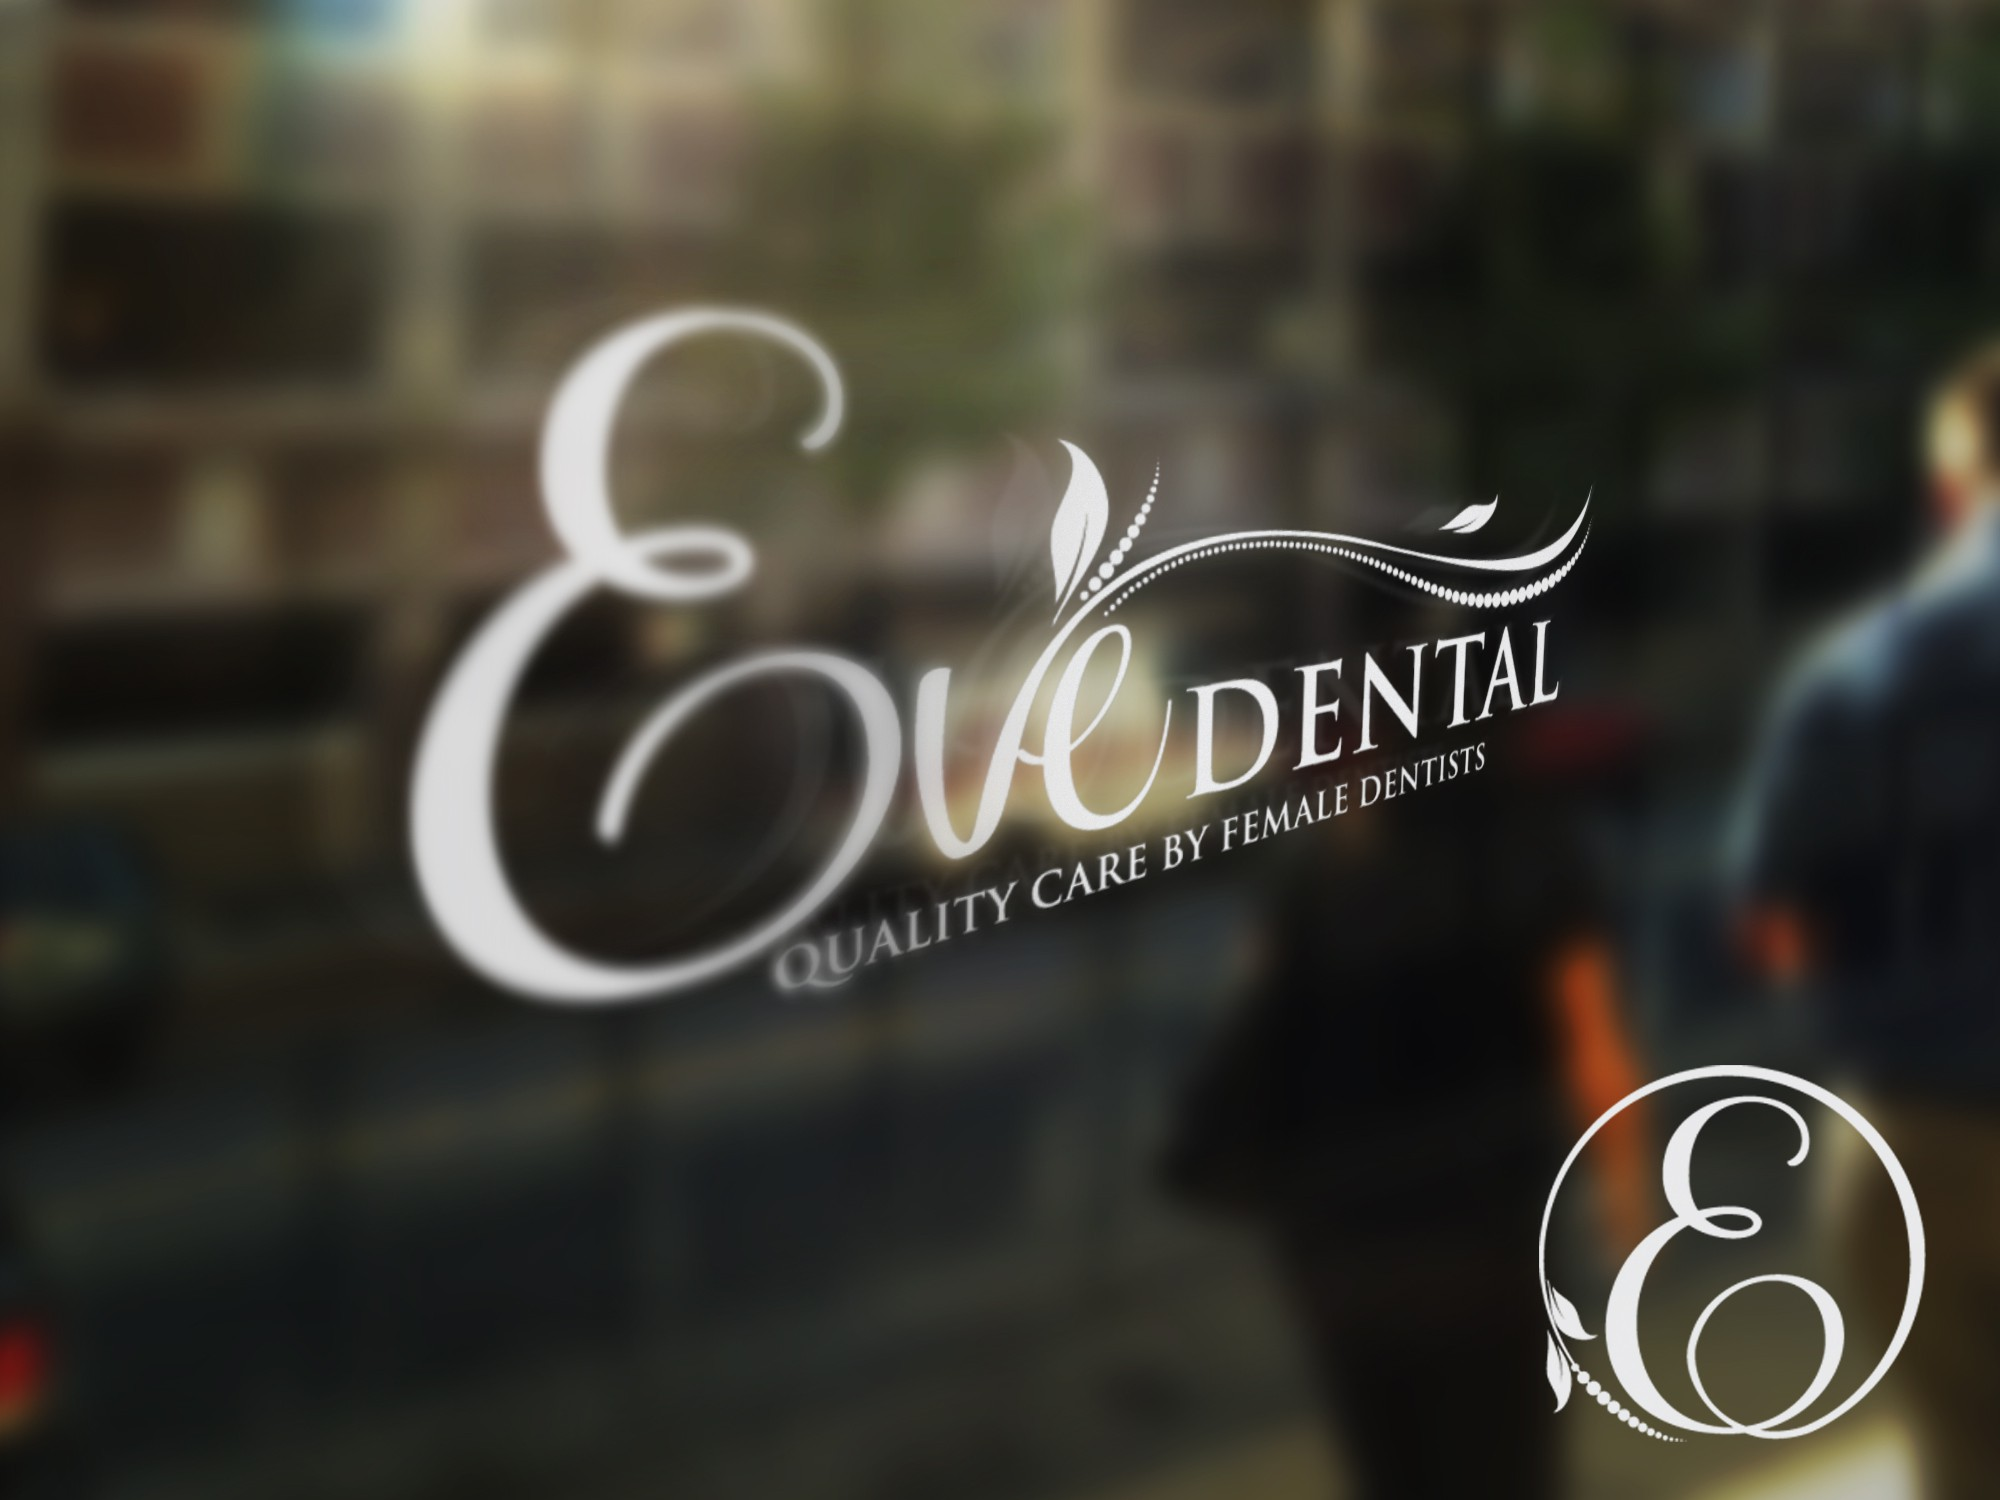 New logo wanted for Eve Dental